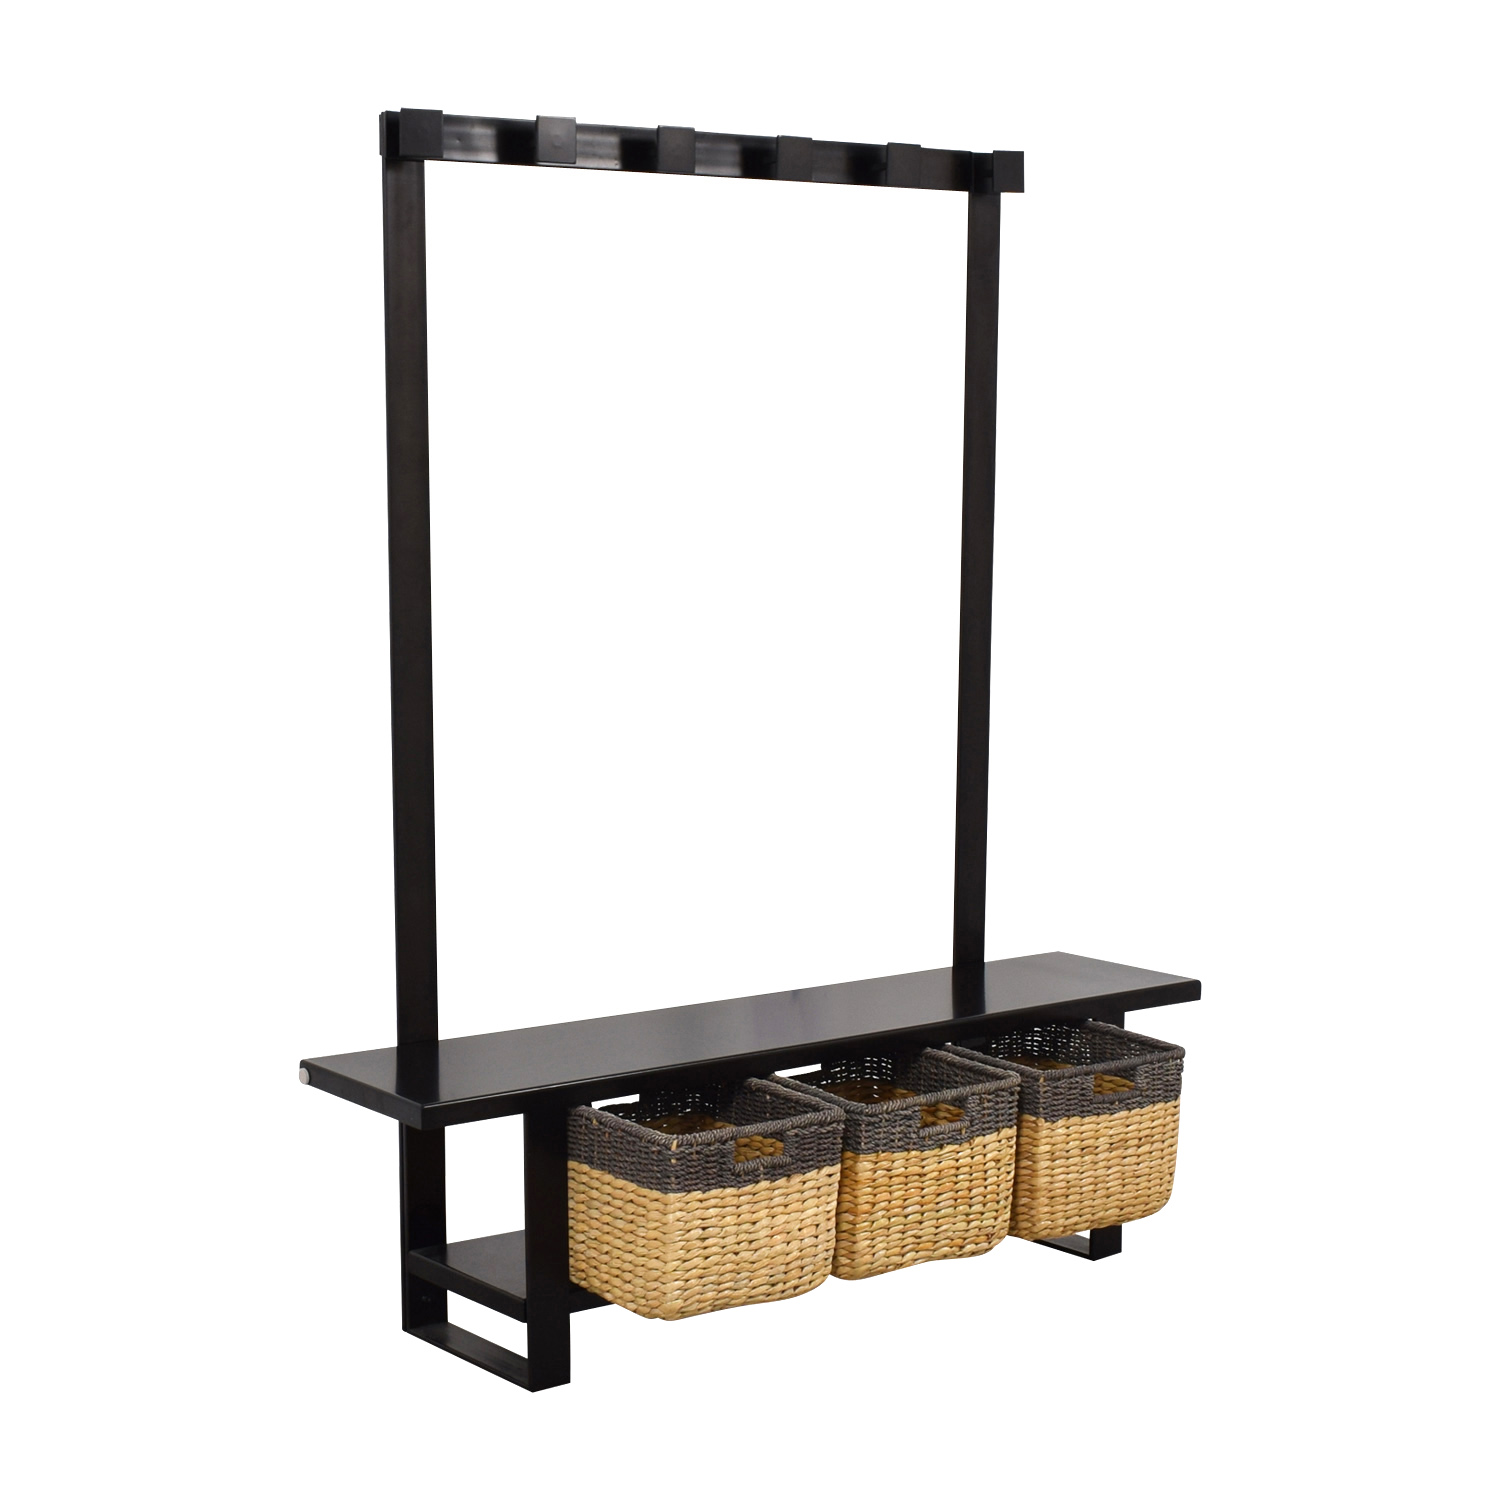 Crate & Barrel Crate & Barrel Black Coat Rack with Bench and Storage used